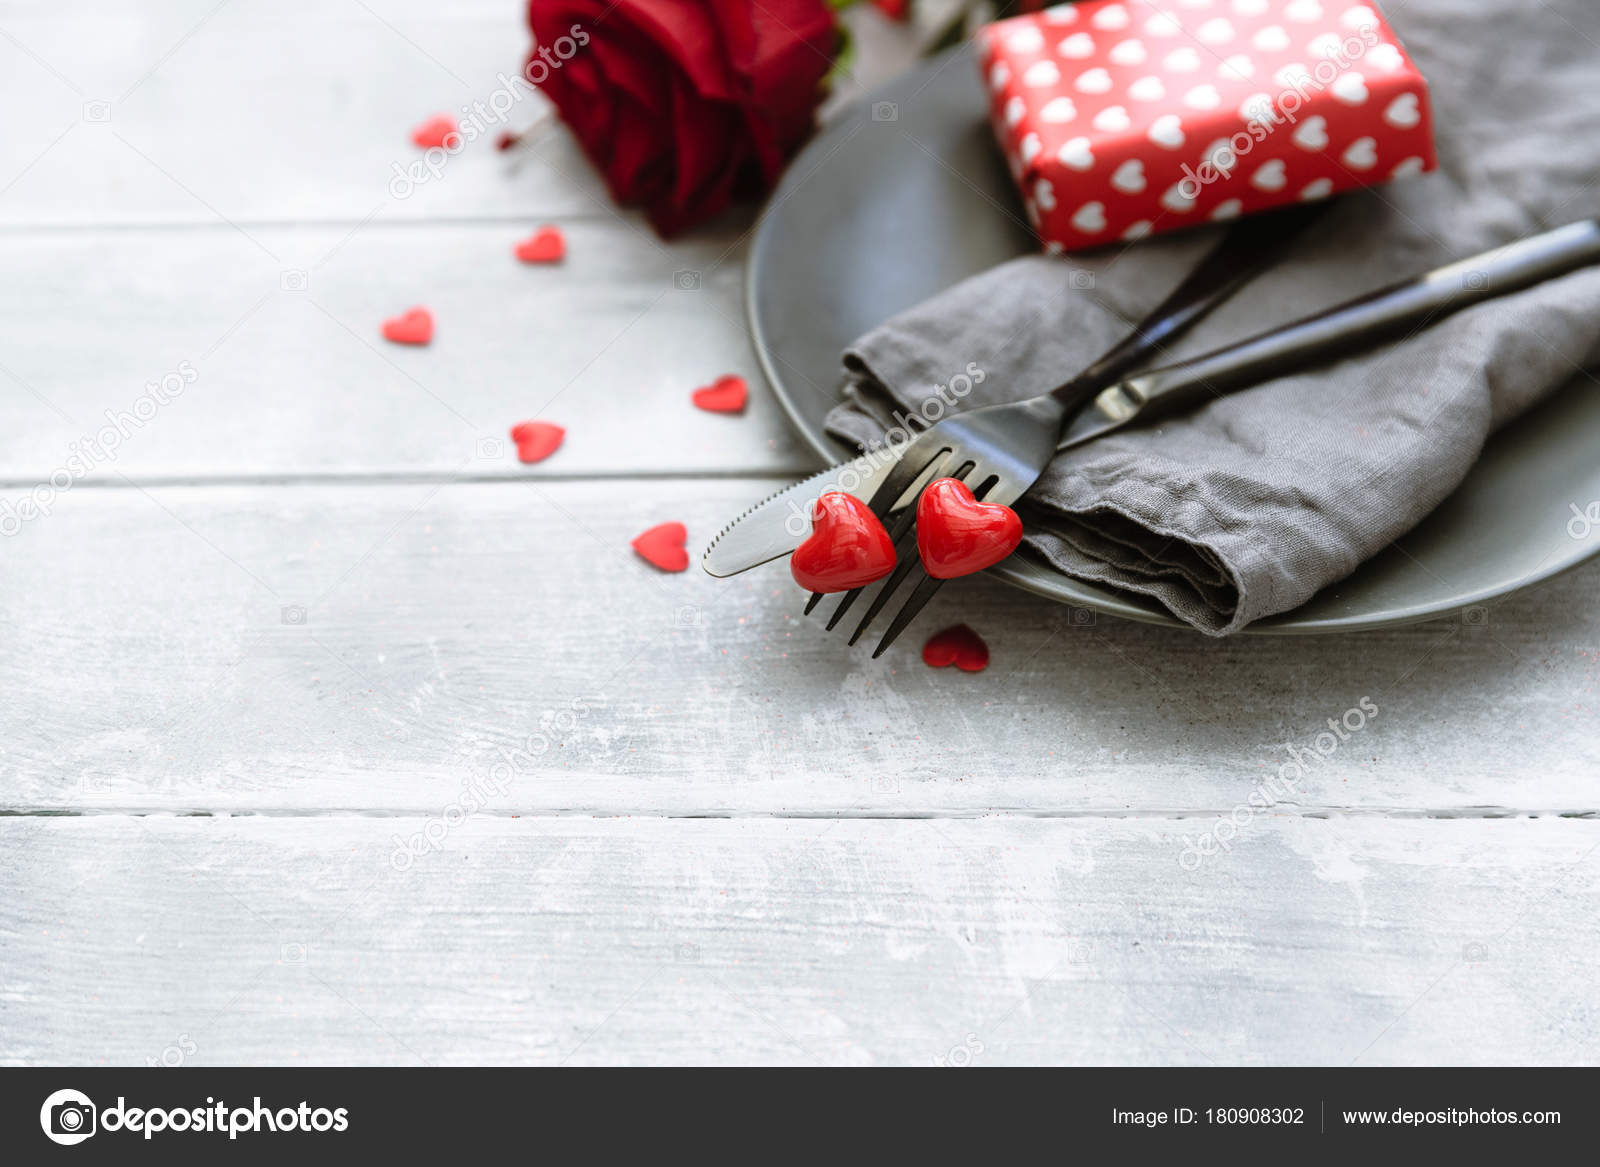 Romantic Dinner Concept Valentine Day Table Setting Background